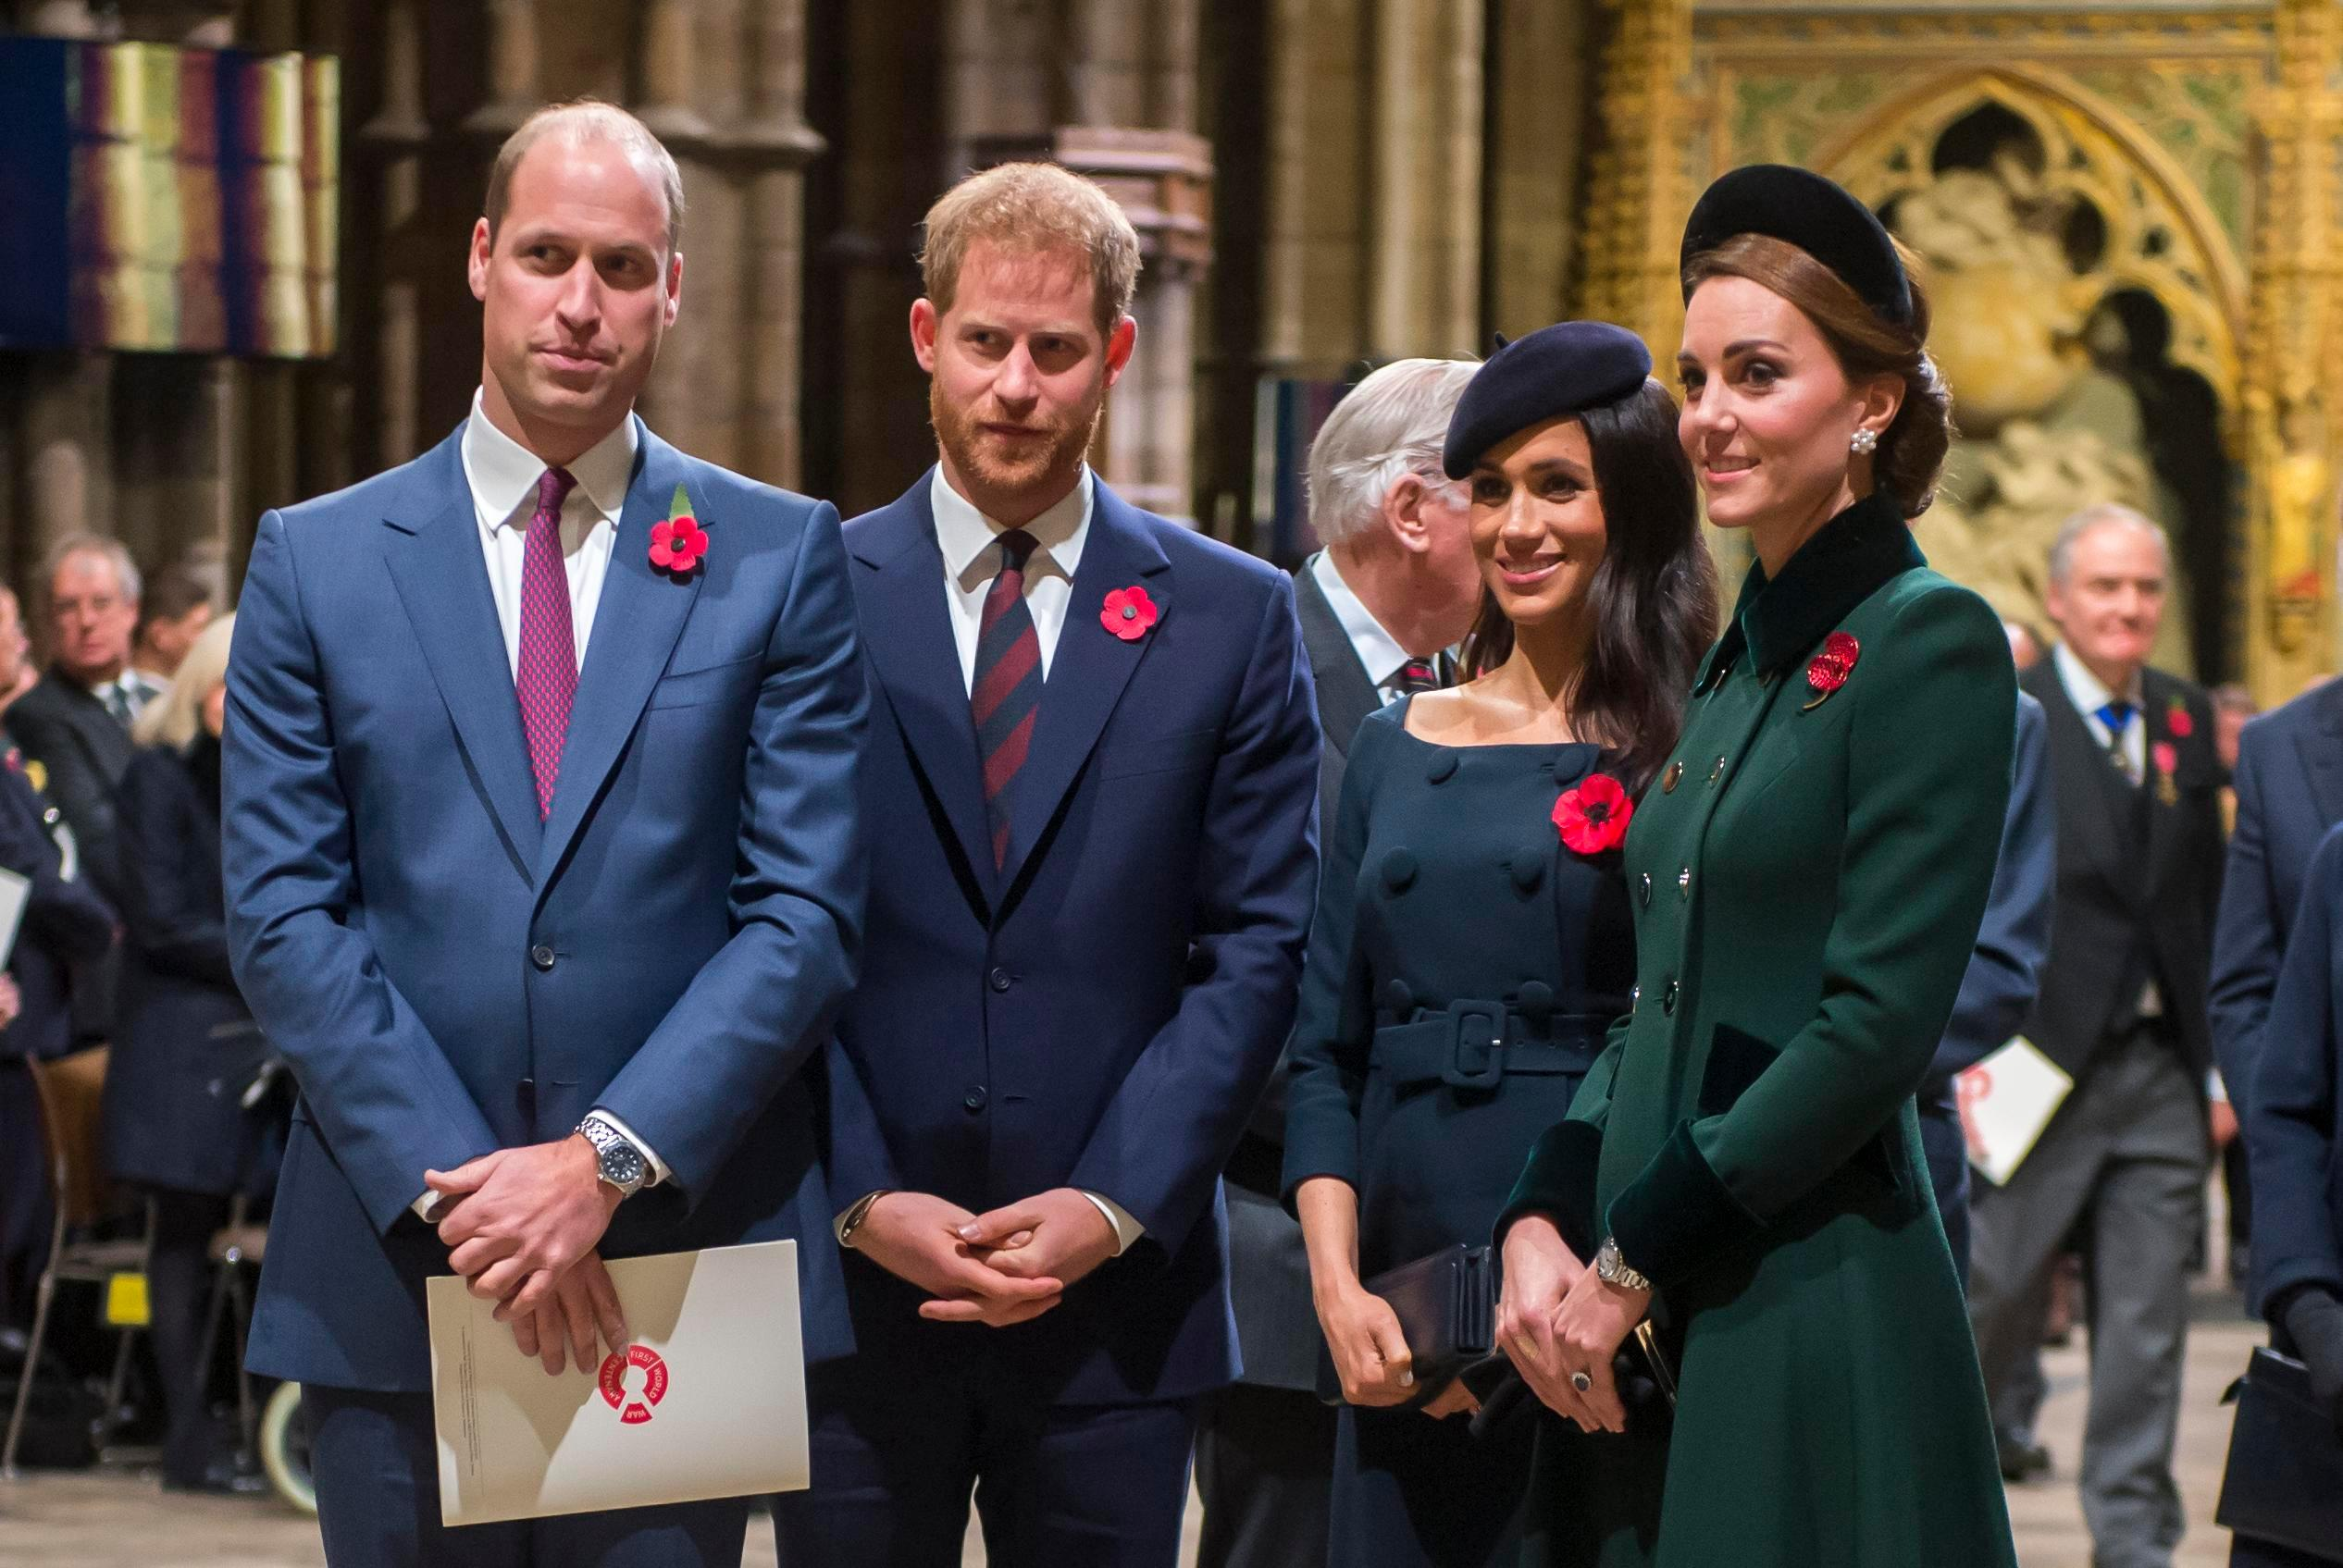 The Royal Family have a joint Whatsapp group and we'd love to get in on that chat